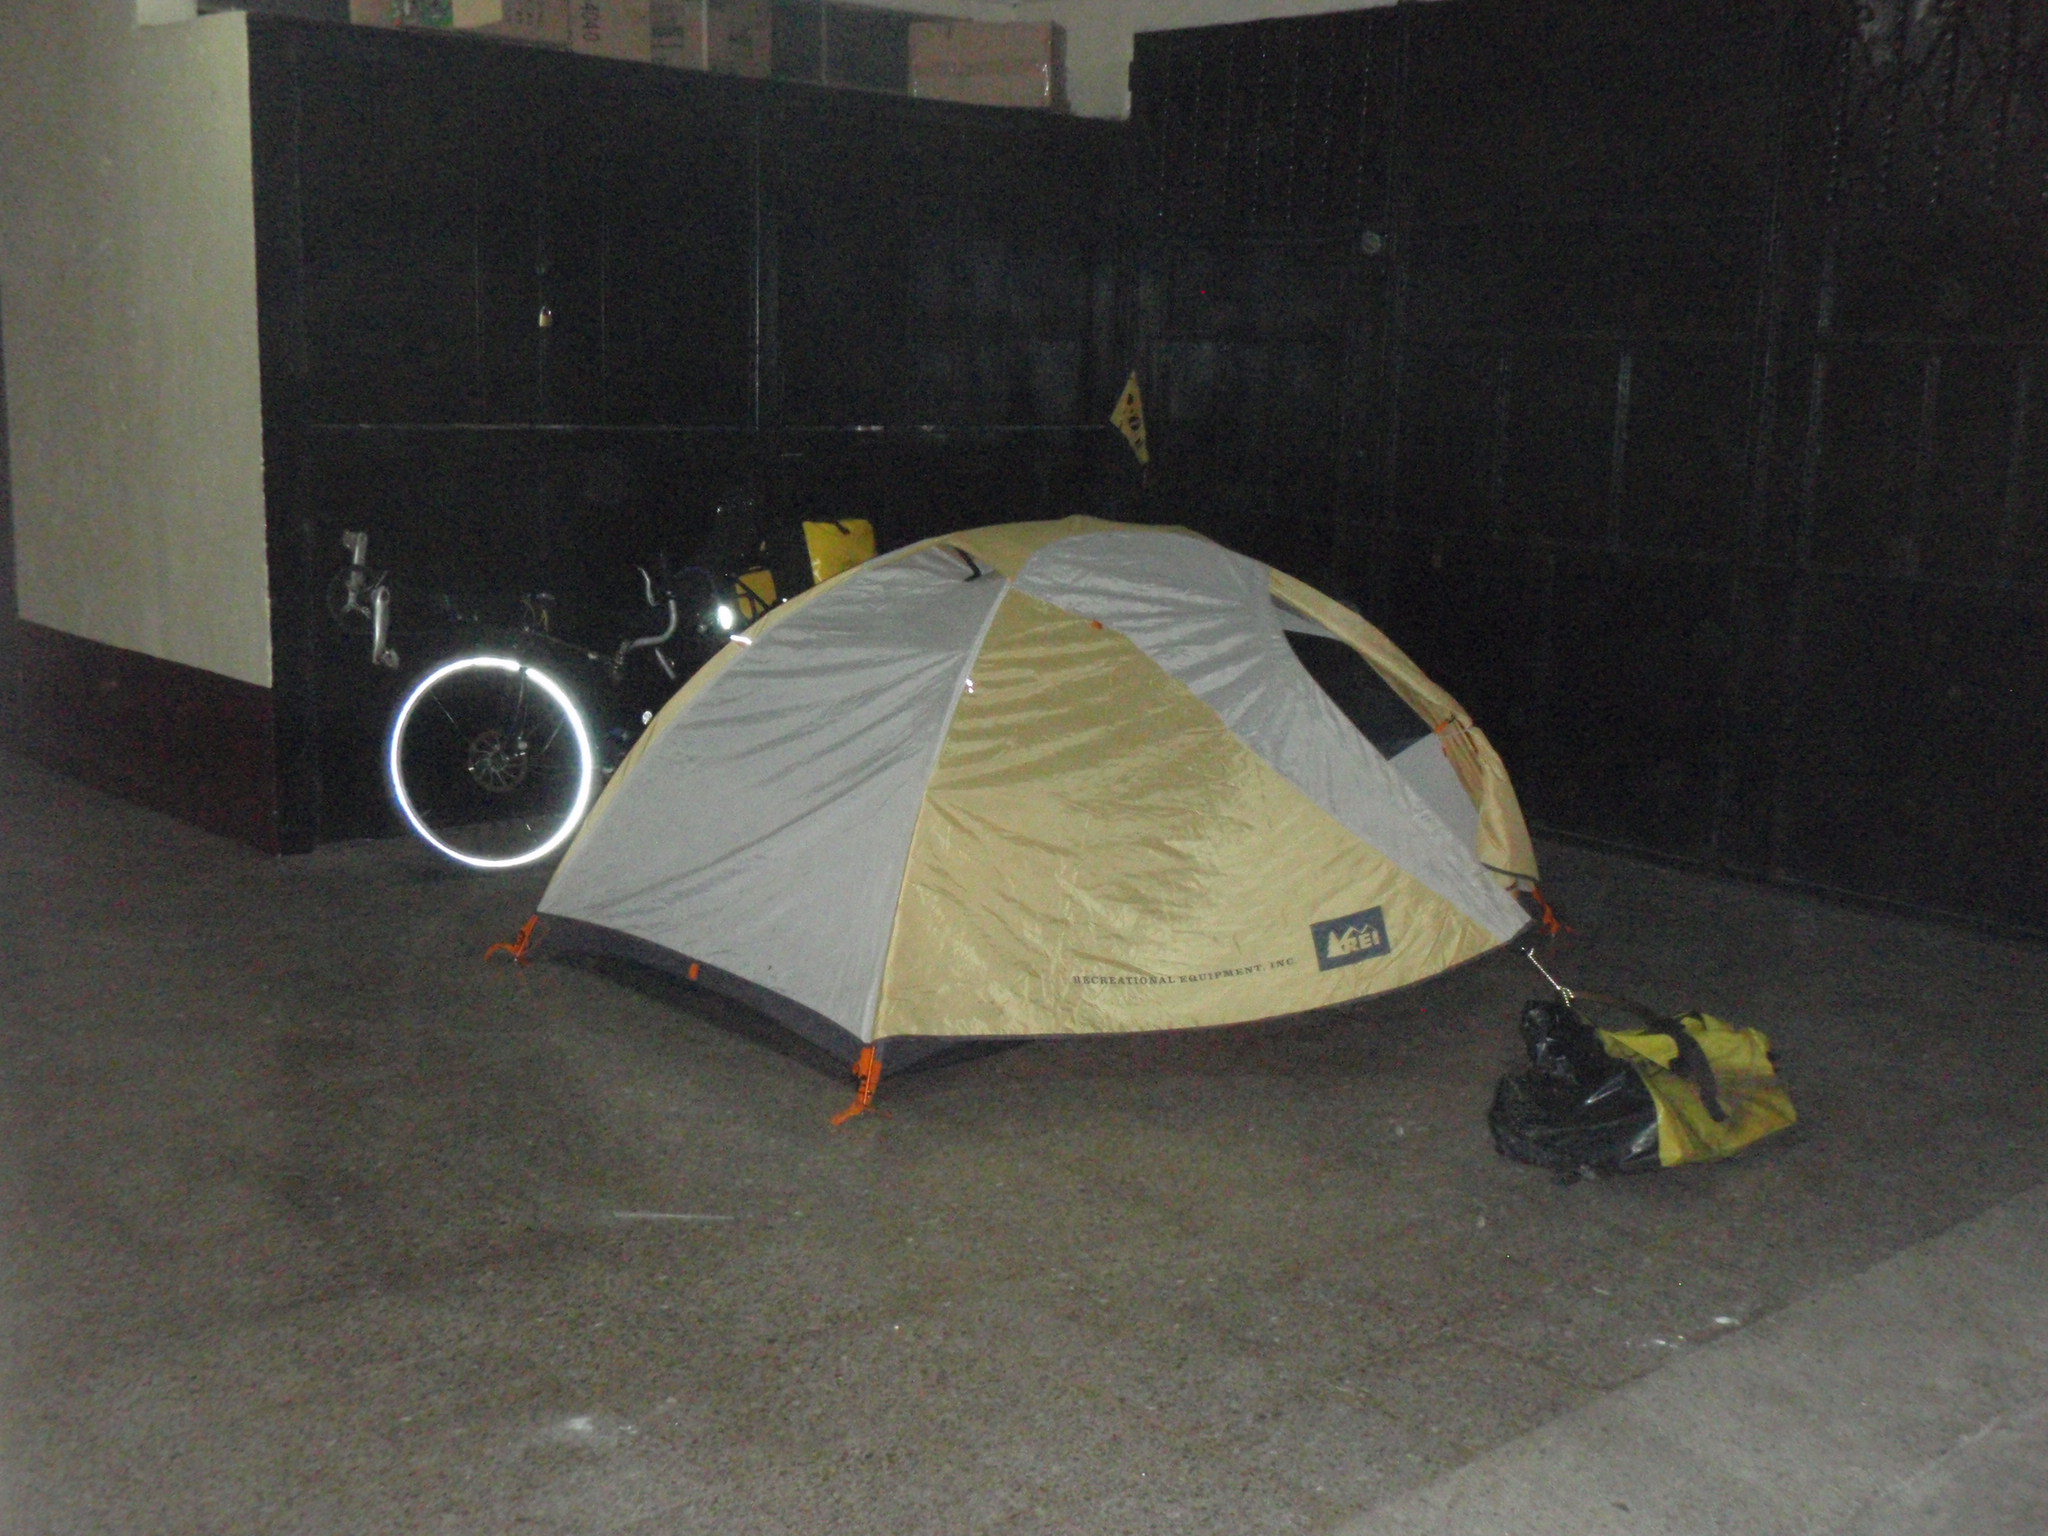 Who needs a room at the hotel when you have a tent?